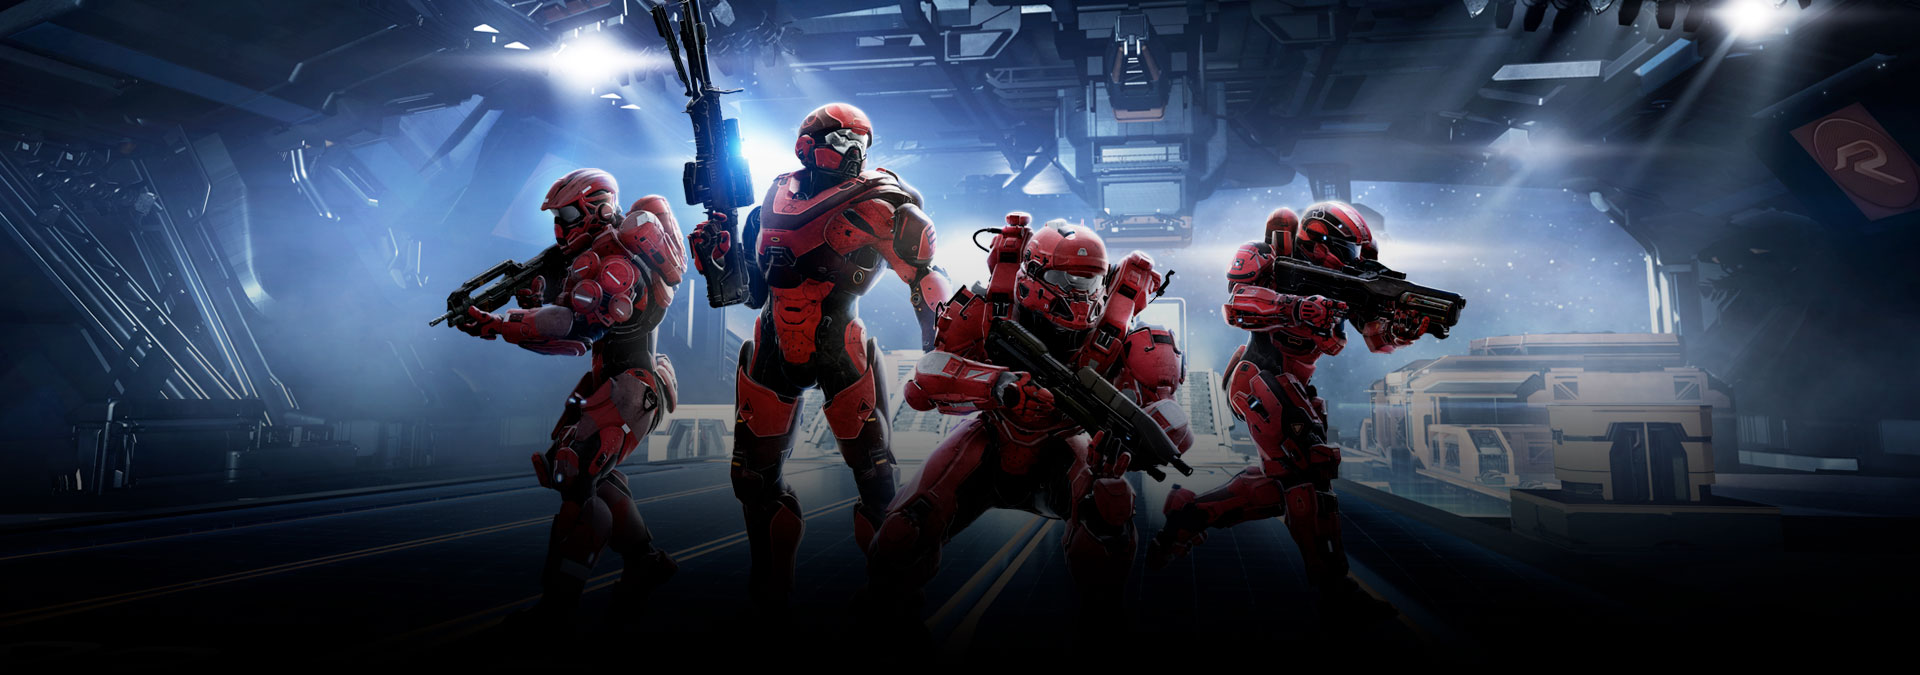 1000 images about Halo suit Halo 5 Halo and Armors 1920x675